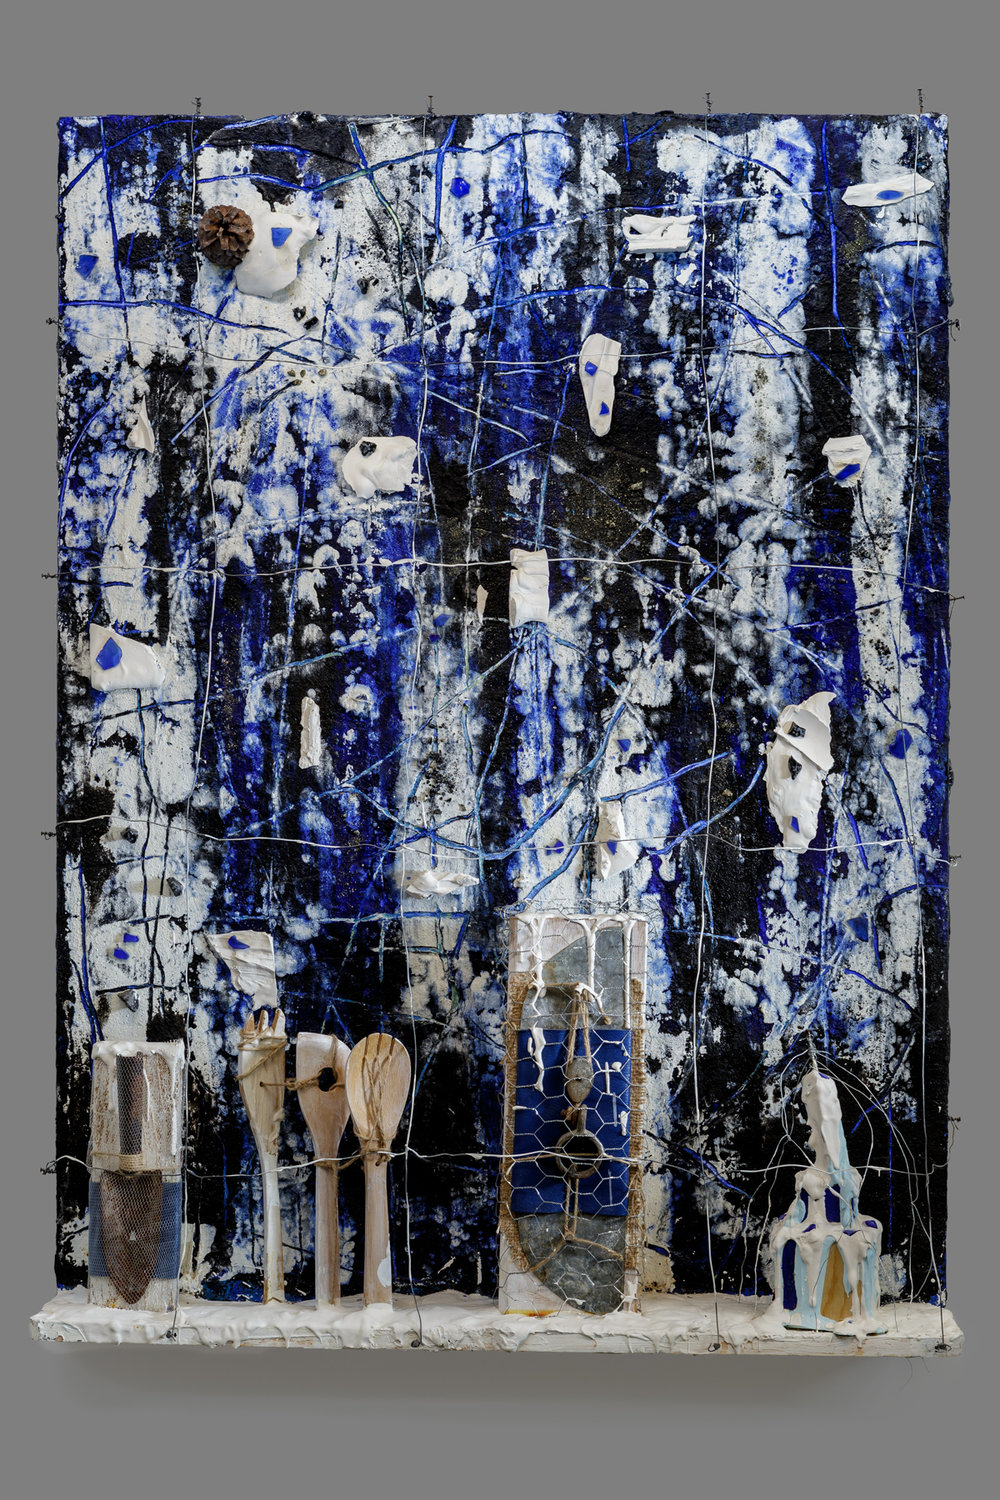 Harmony in Blue  Mixed media on panel 48 x 36 x 7.5 in. /121.9 x 91.4 x 19 cm.